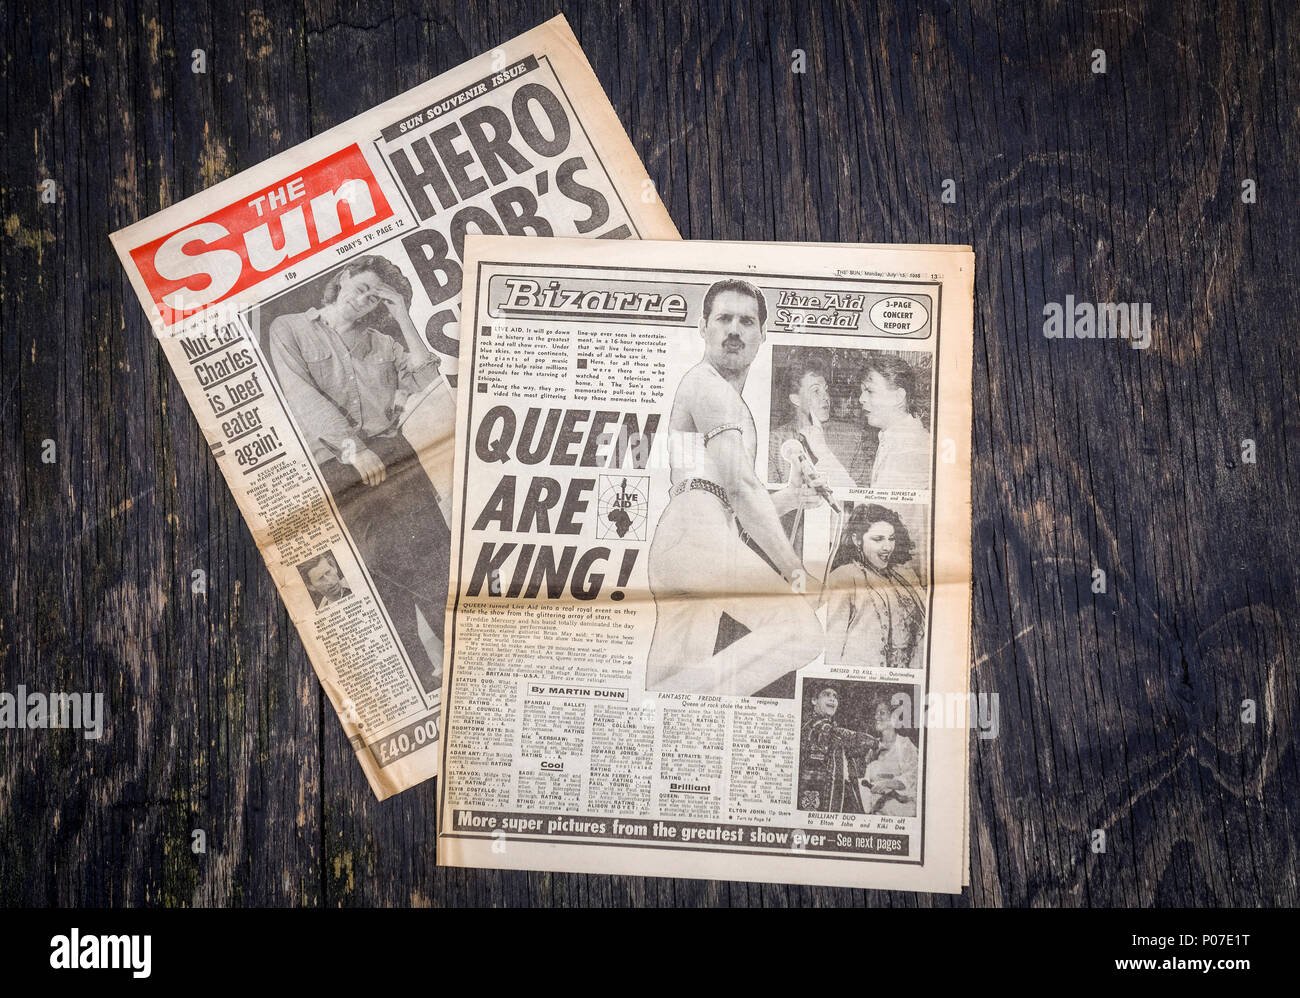 British Newspaper The Sun reporting on the charity live music event, Live Aid held at Wembley Stadium in London, 13th July 1985 by Sir Bob Geldof - Stock Image